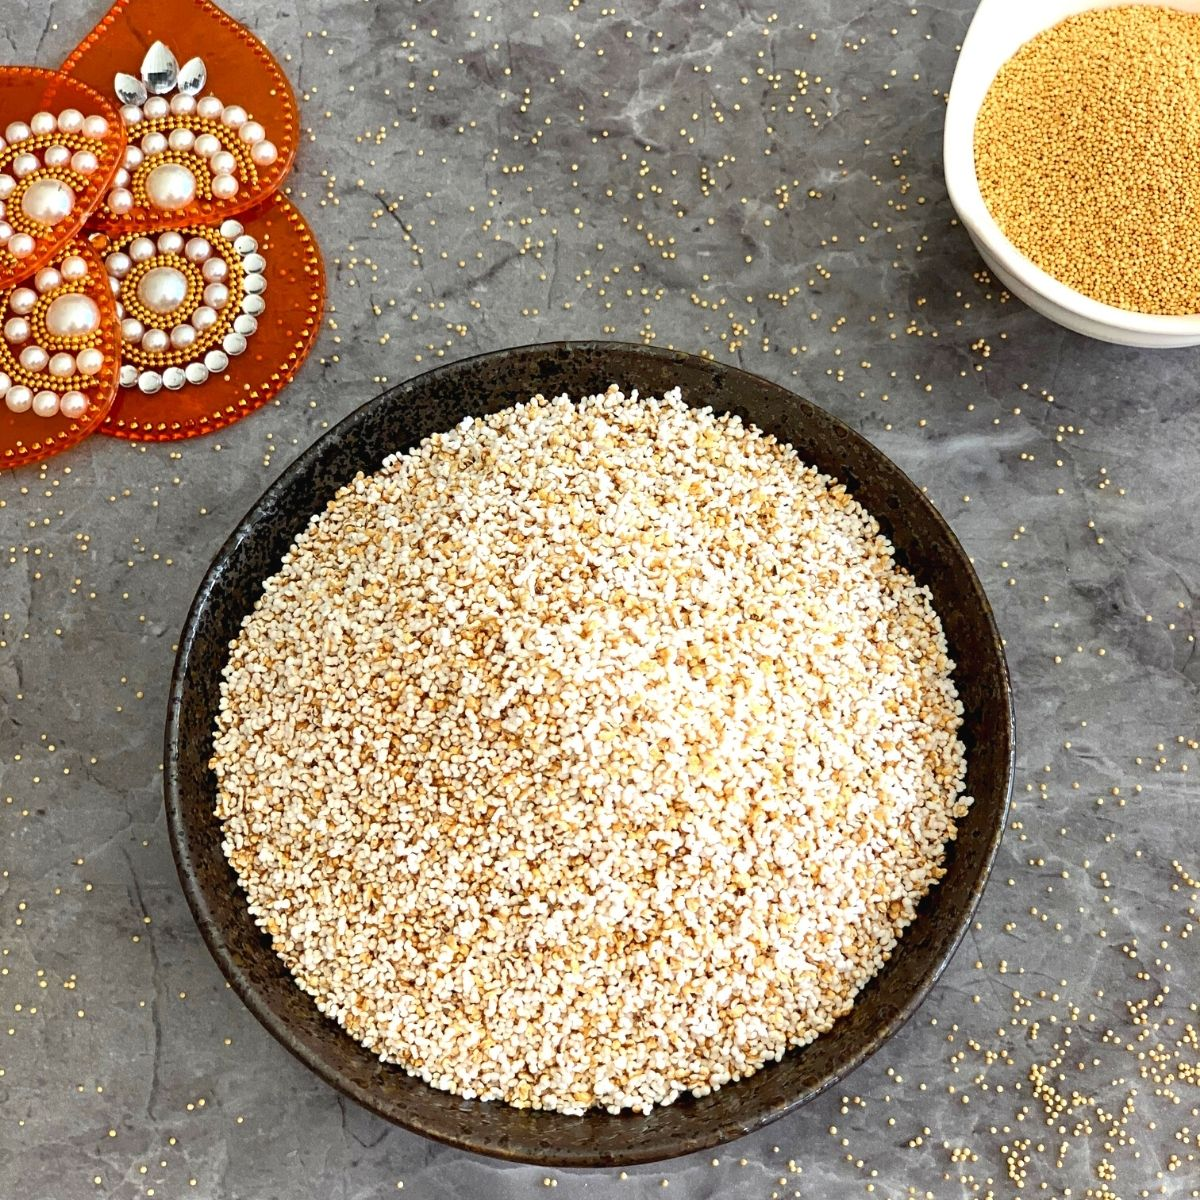 Puffed Amaranth or Popped Rajgira is easy to make gluten free snack that is popped similar to popcorn and consumed as is or in various recipes.